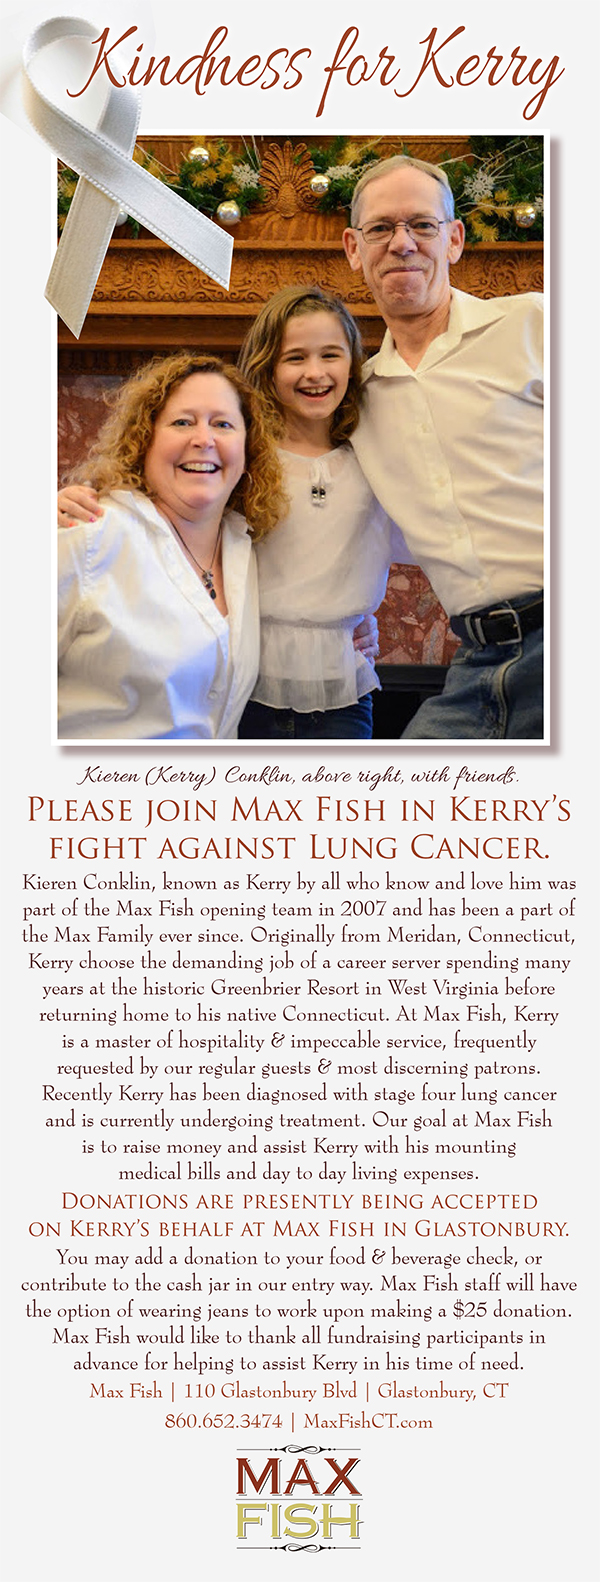 Fundraiser-for-Kerry-FINAL